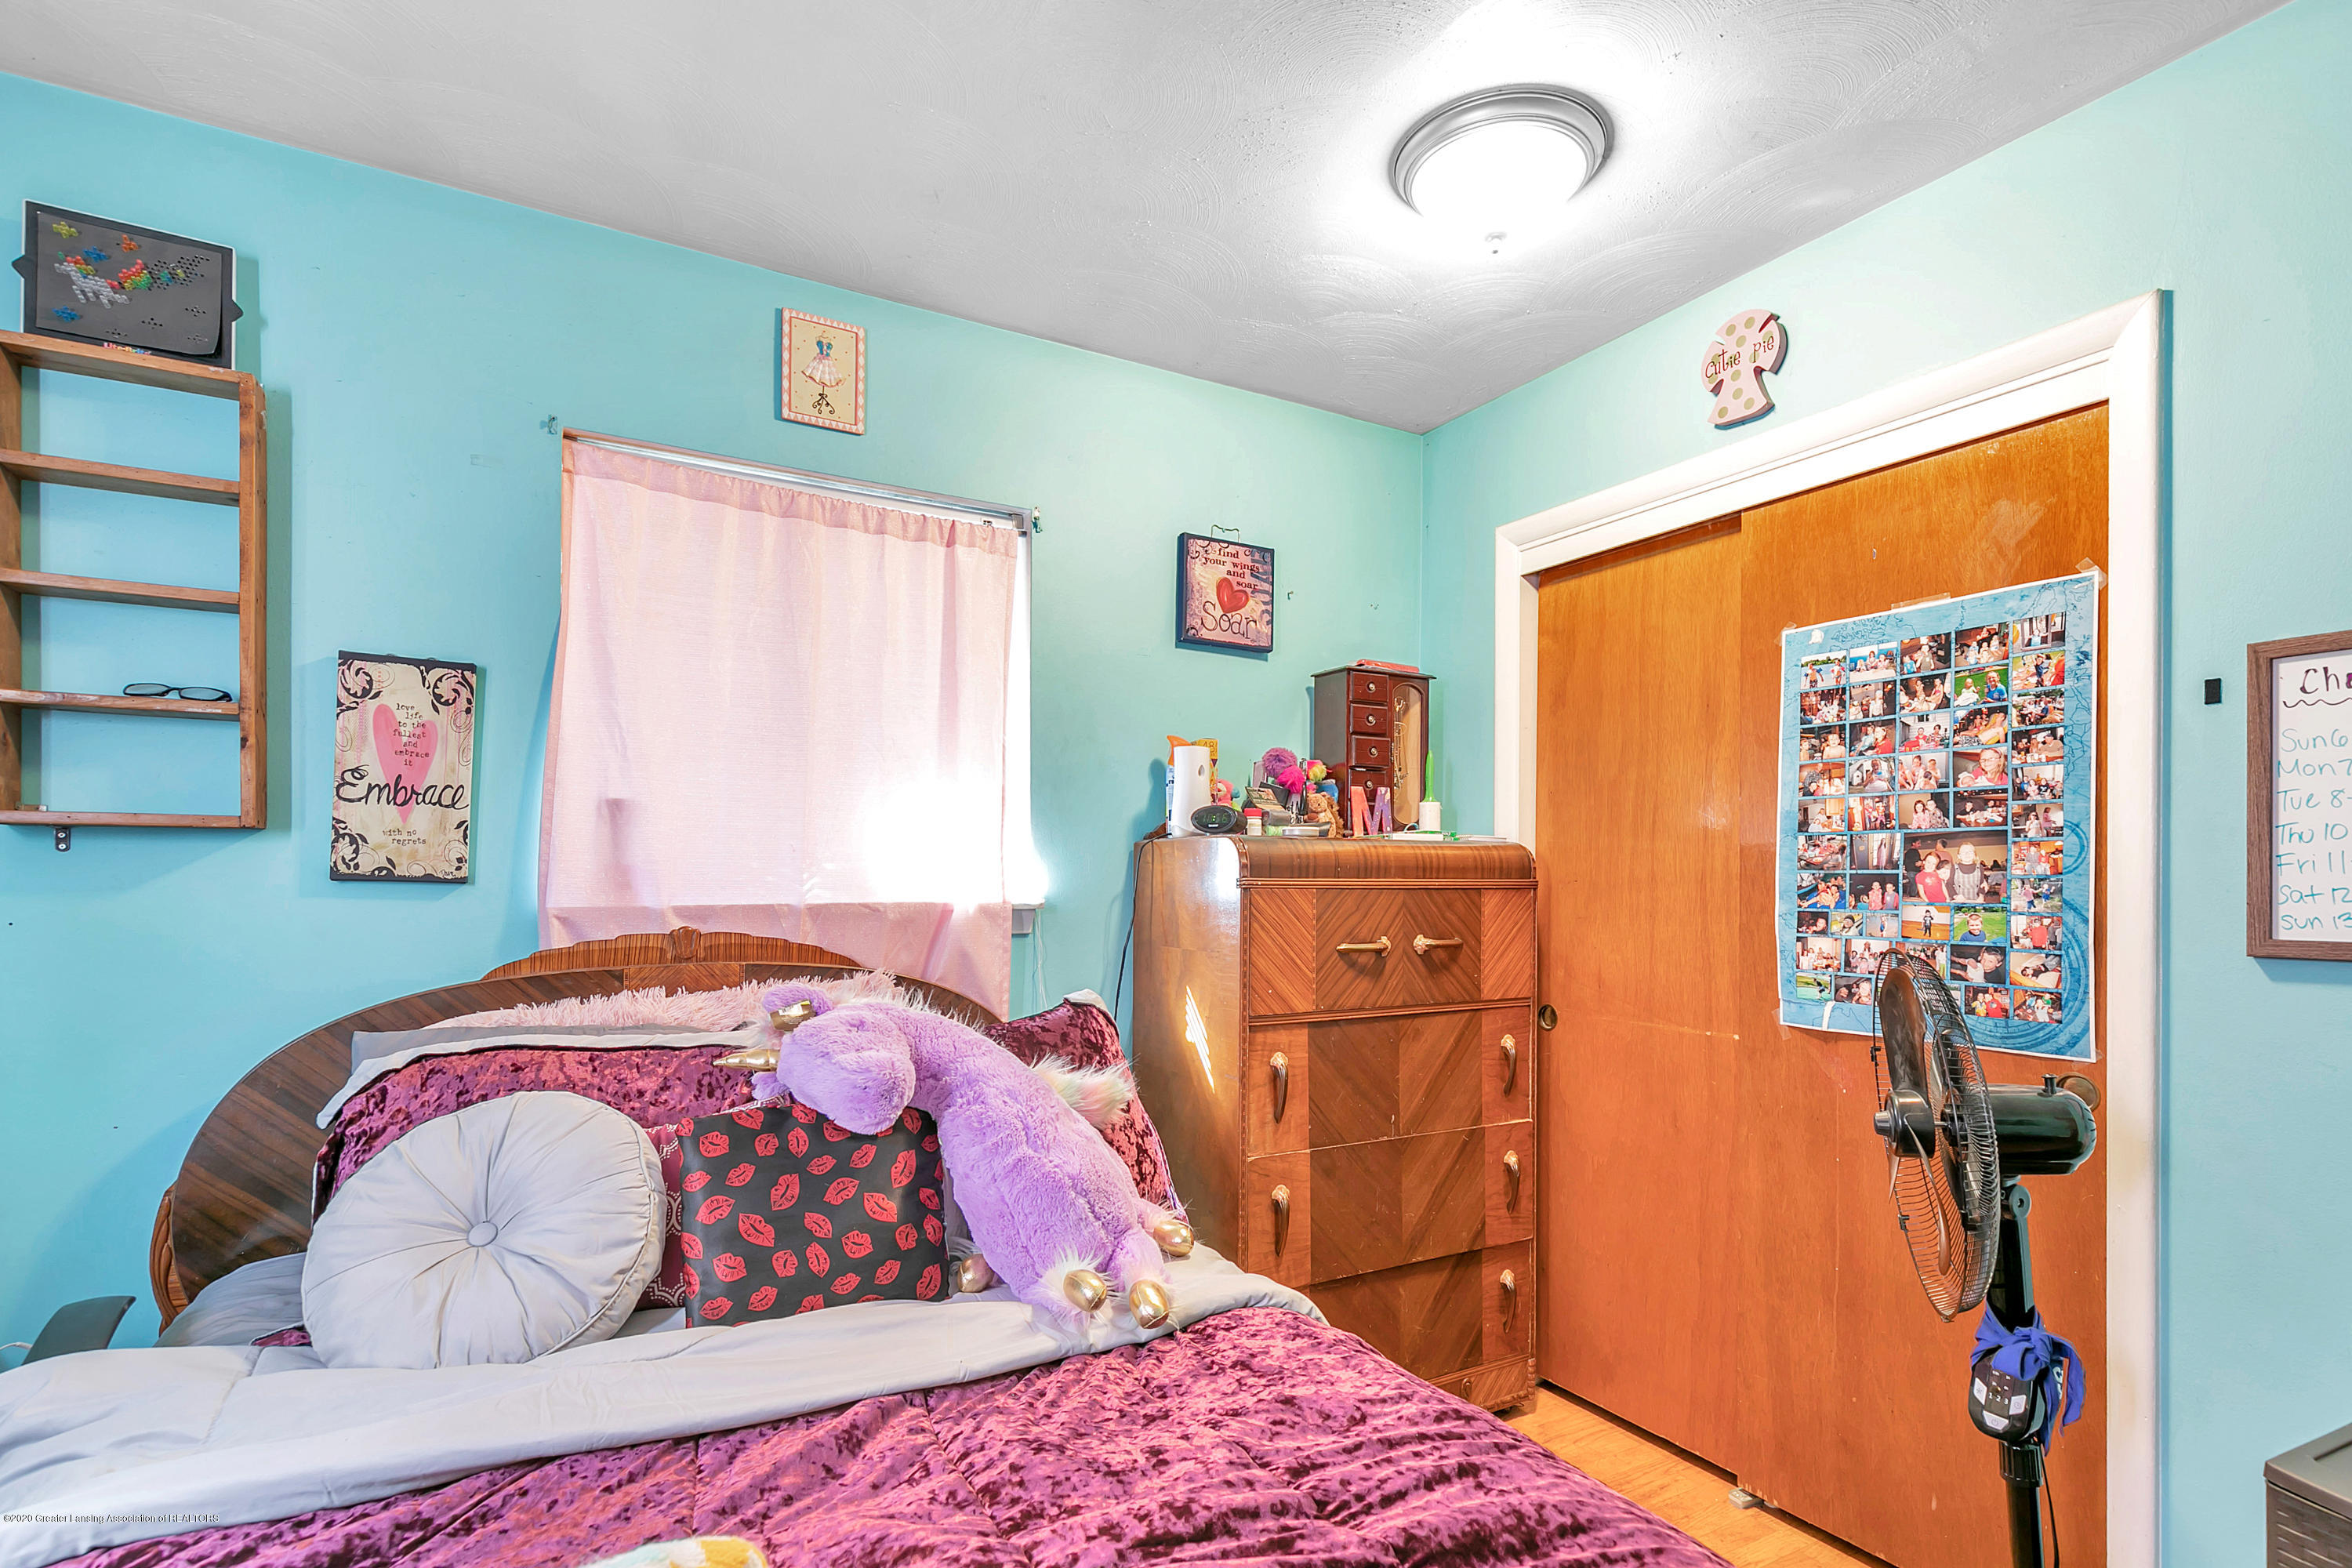 2844 S Deerfield Ave - 9I3A2584 - 16